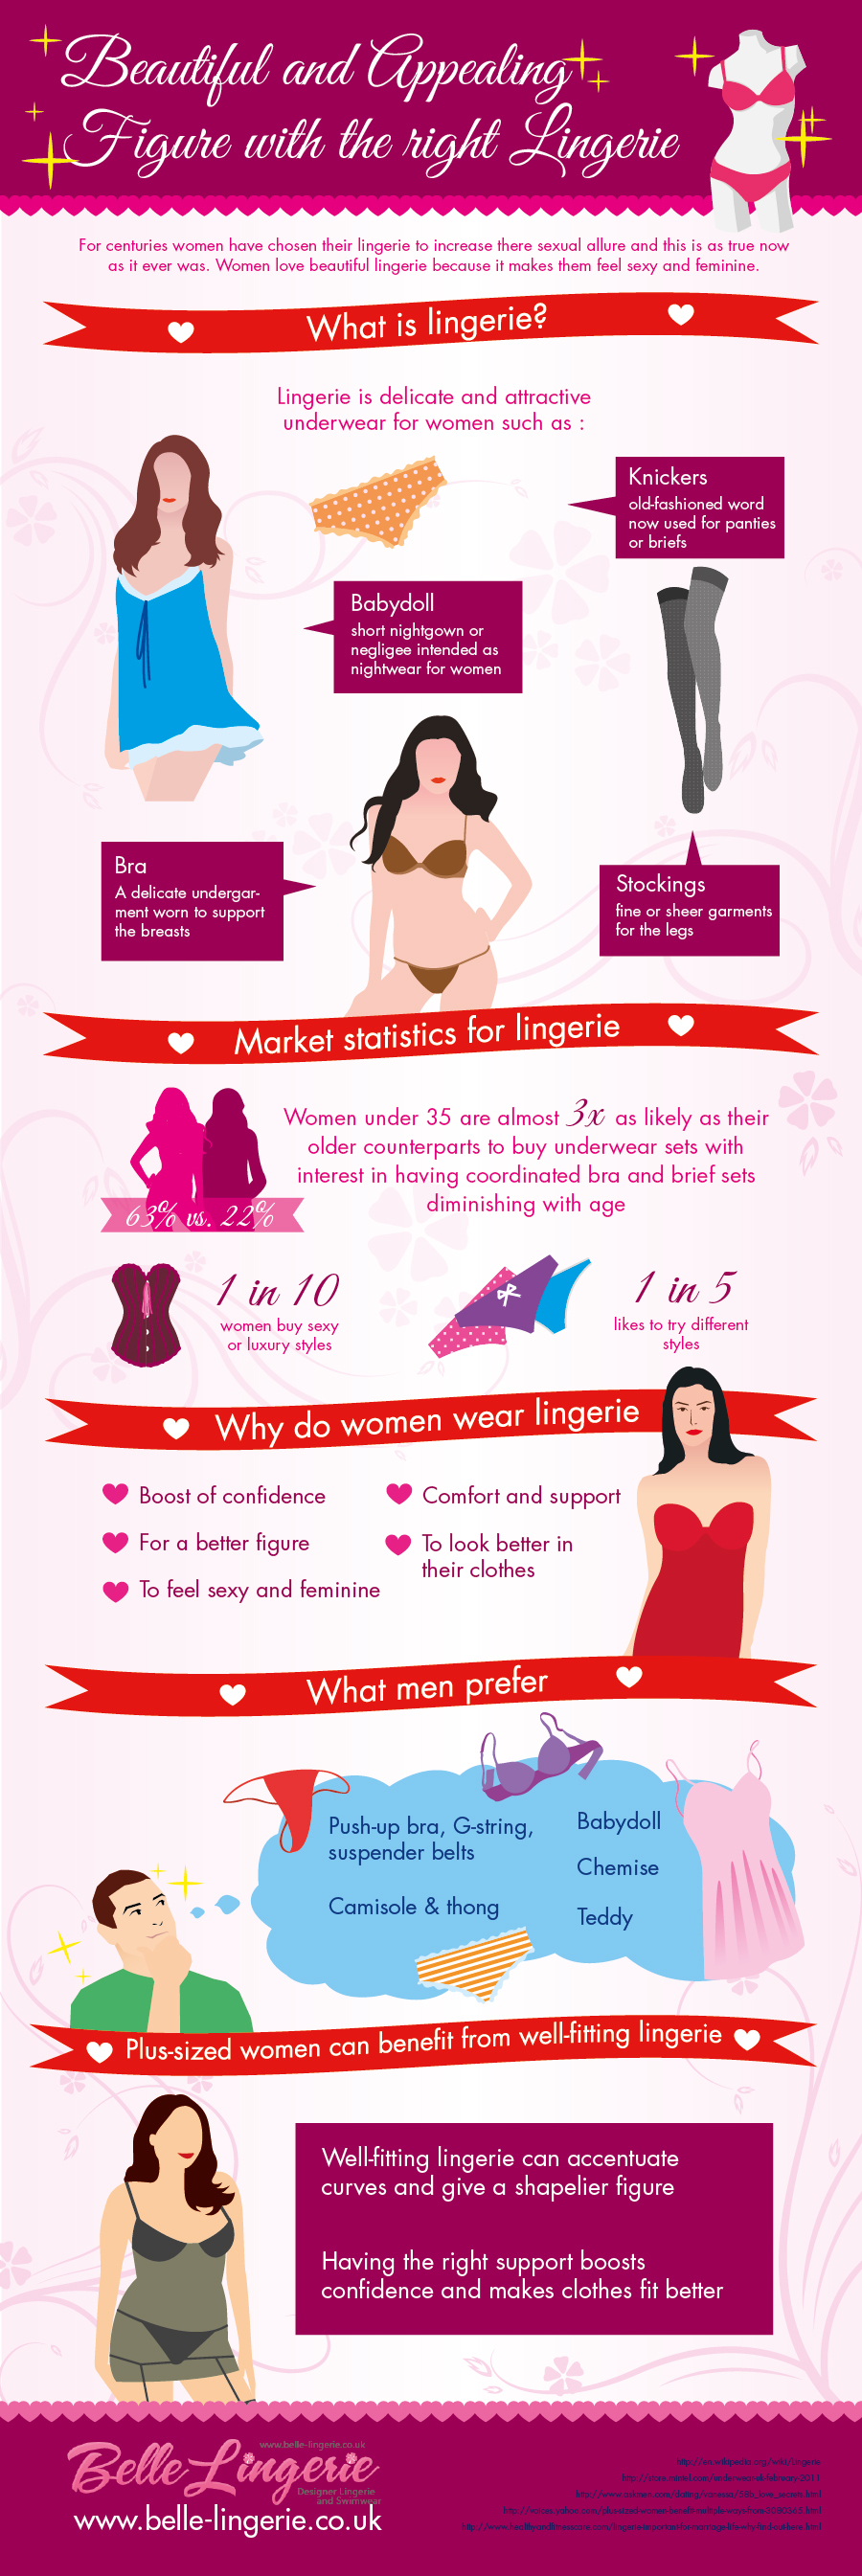 beautiful-and-appealing-figure-with-the-right-lingerie-infographic